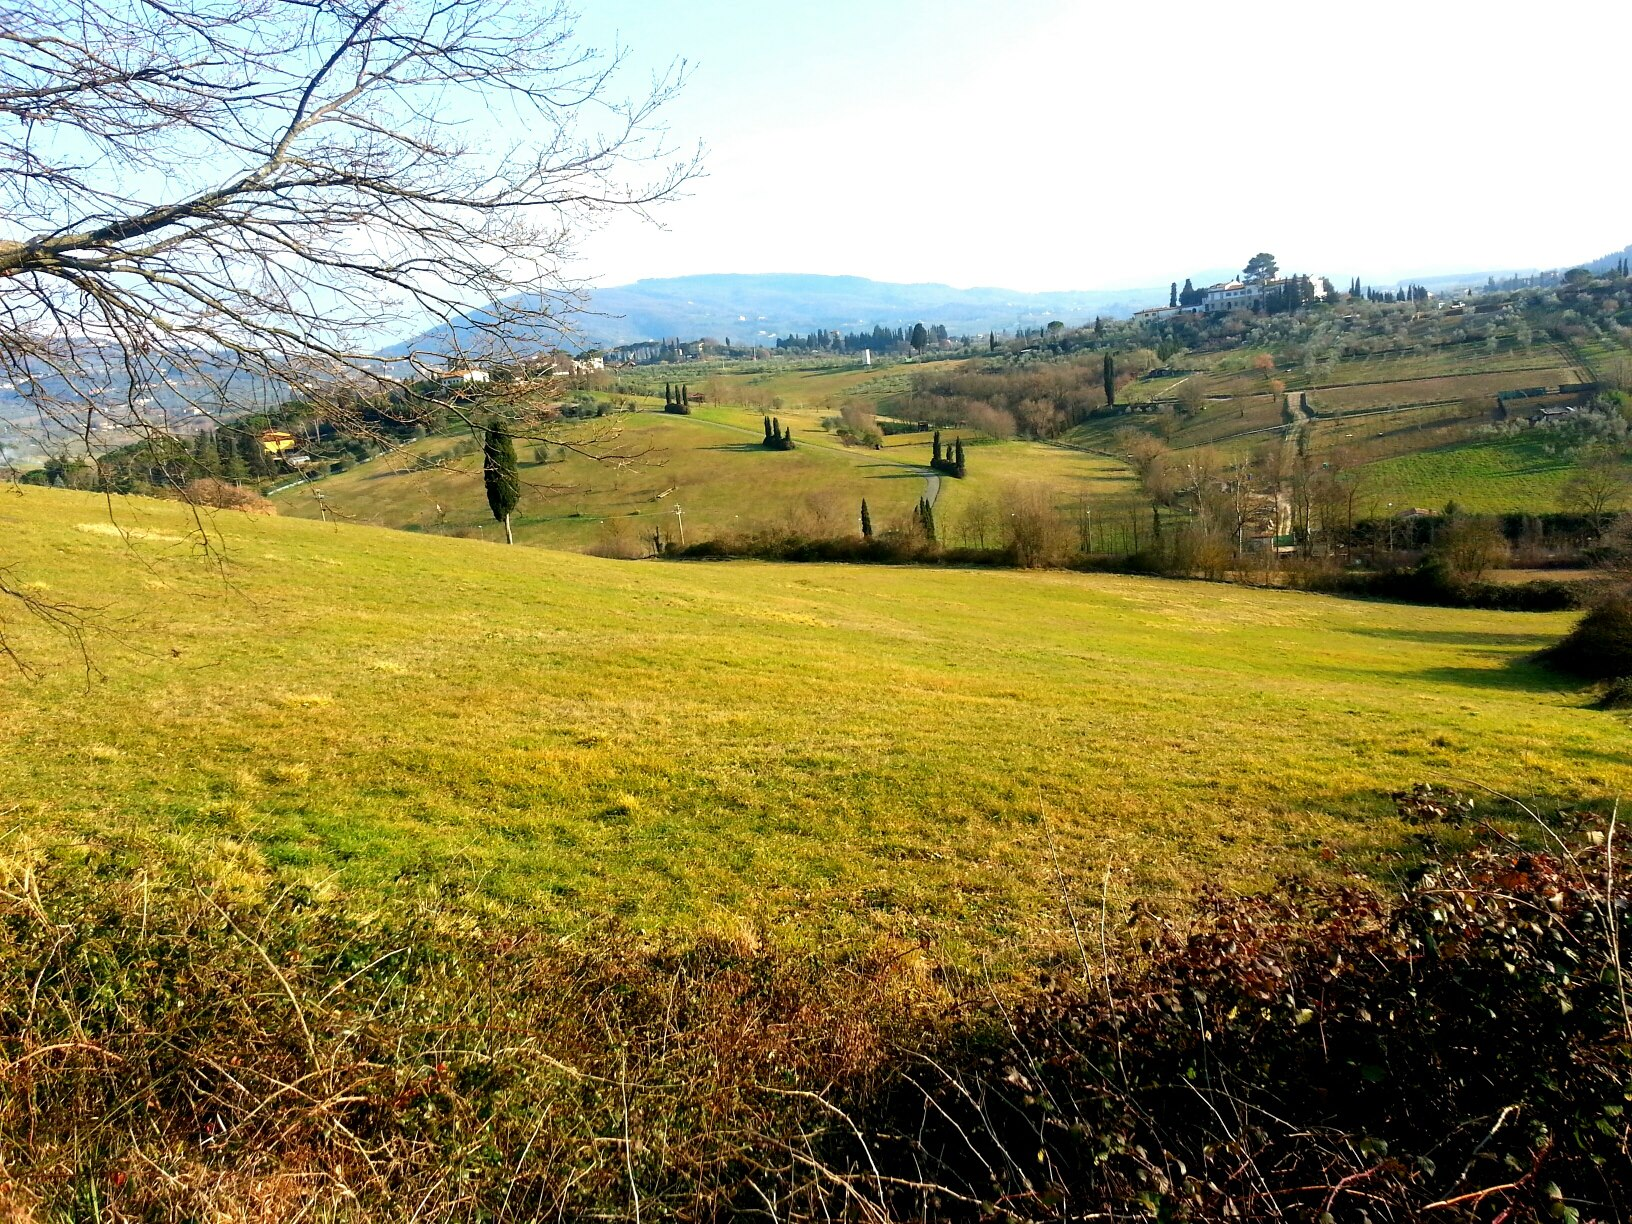 Hiking in the hills above Sorgane in Florence